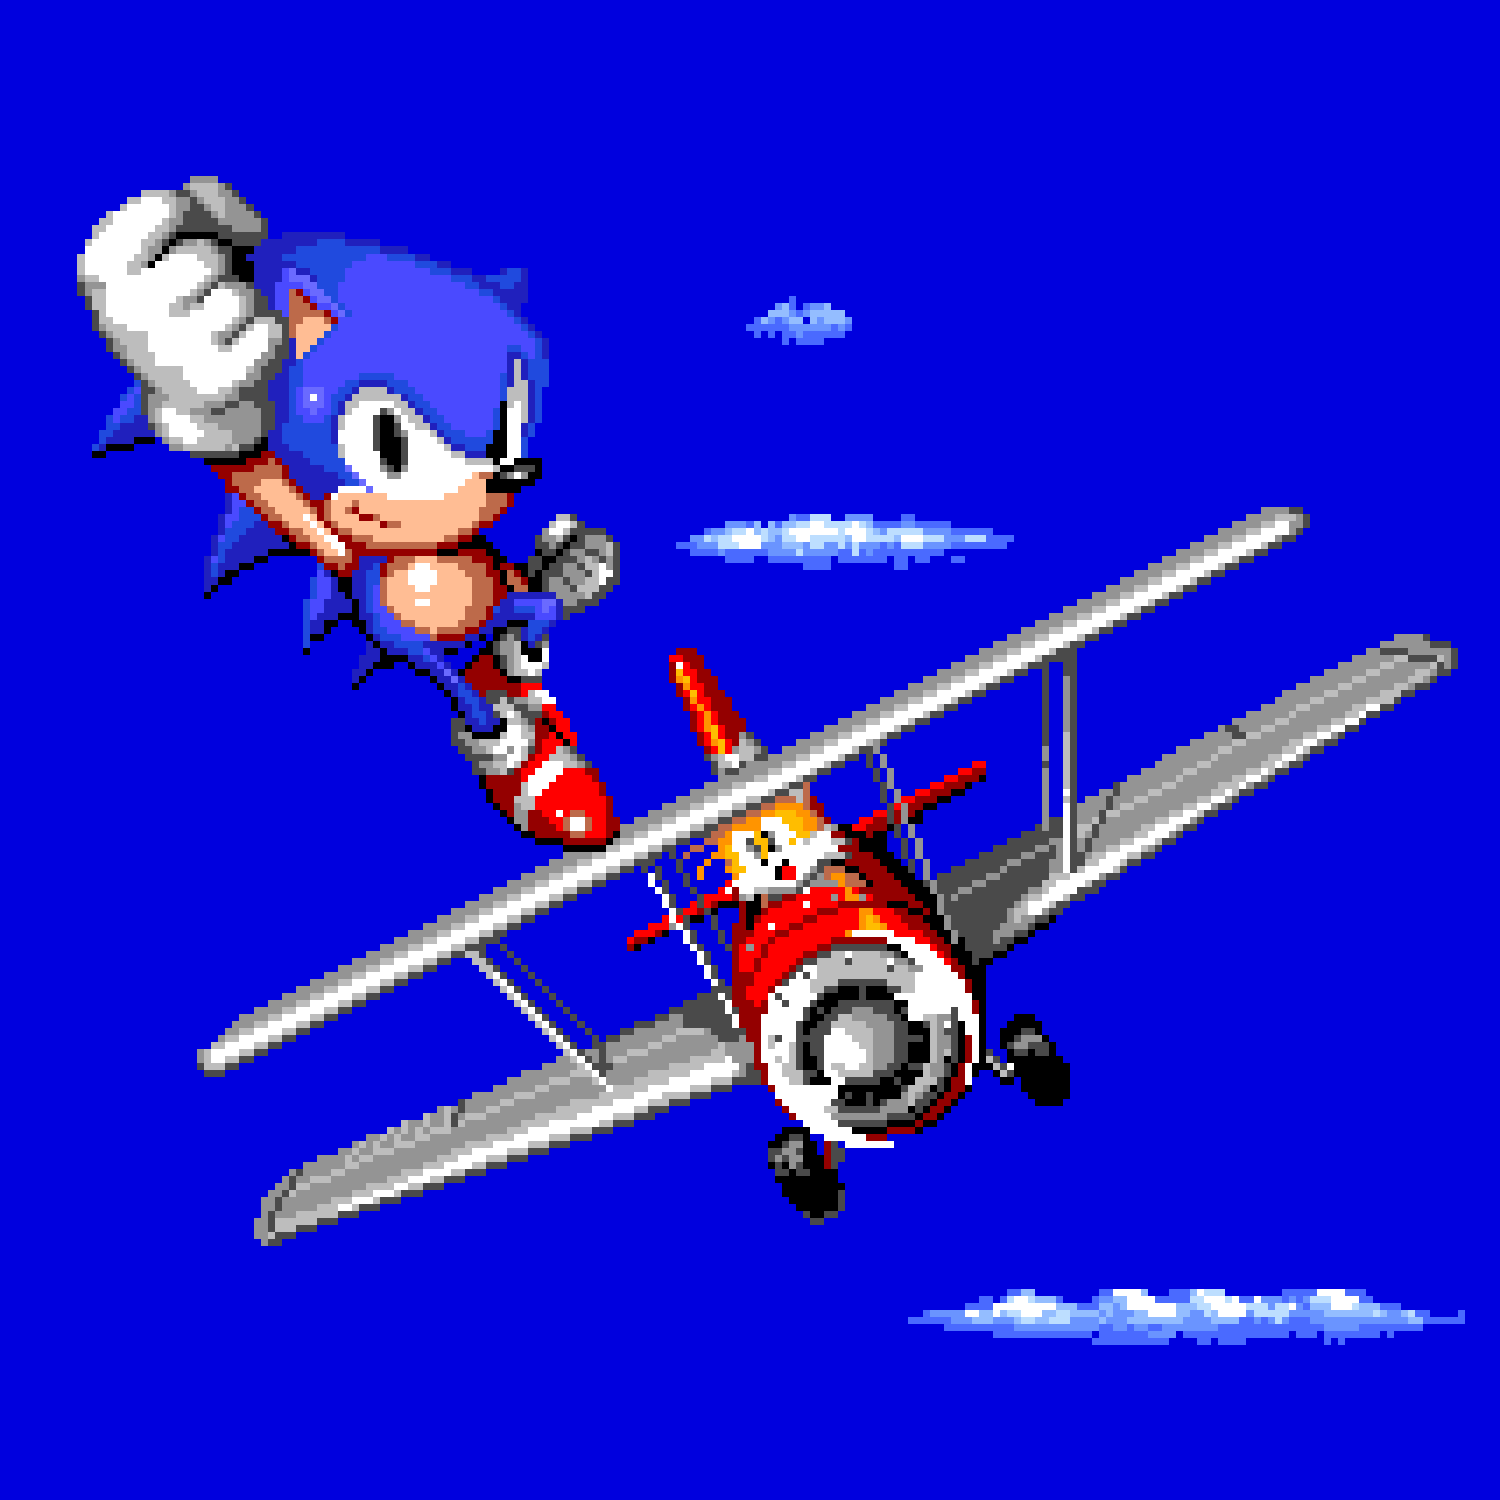 Sonic the Hedgehog 2 - Ending (square)